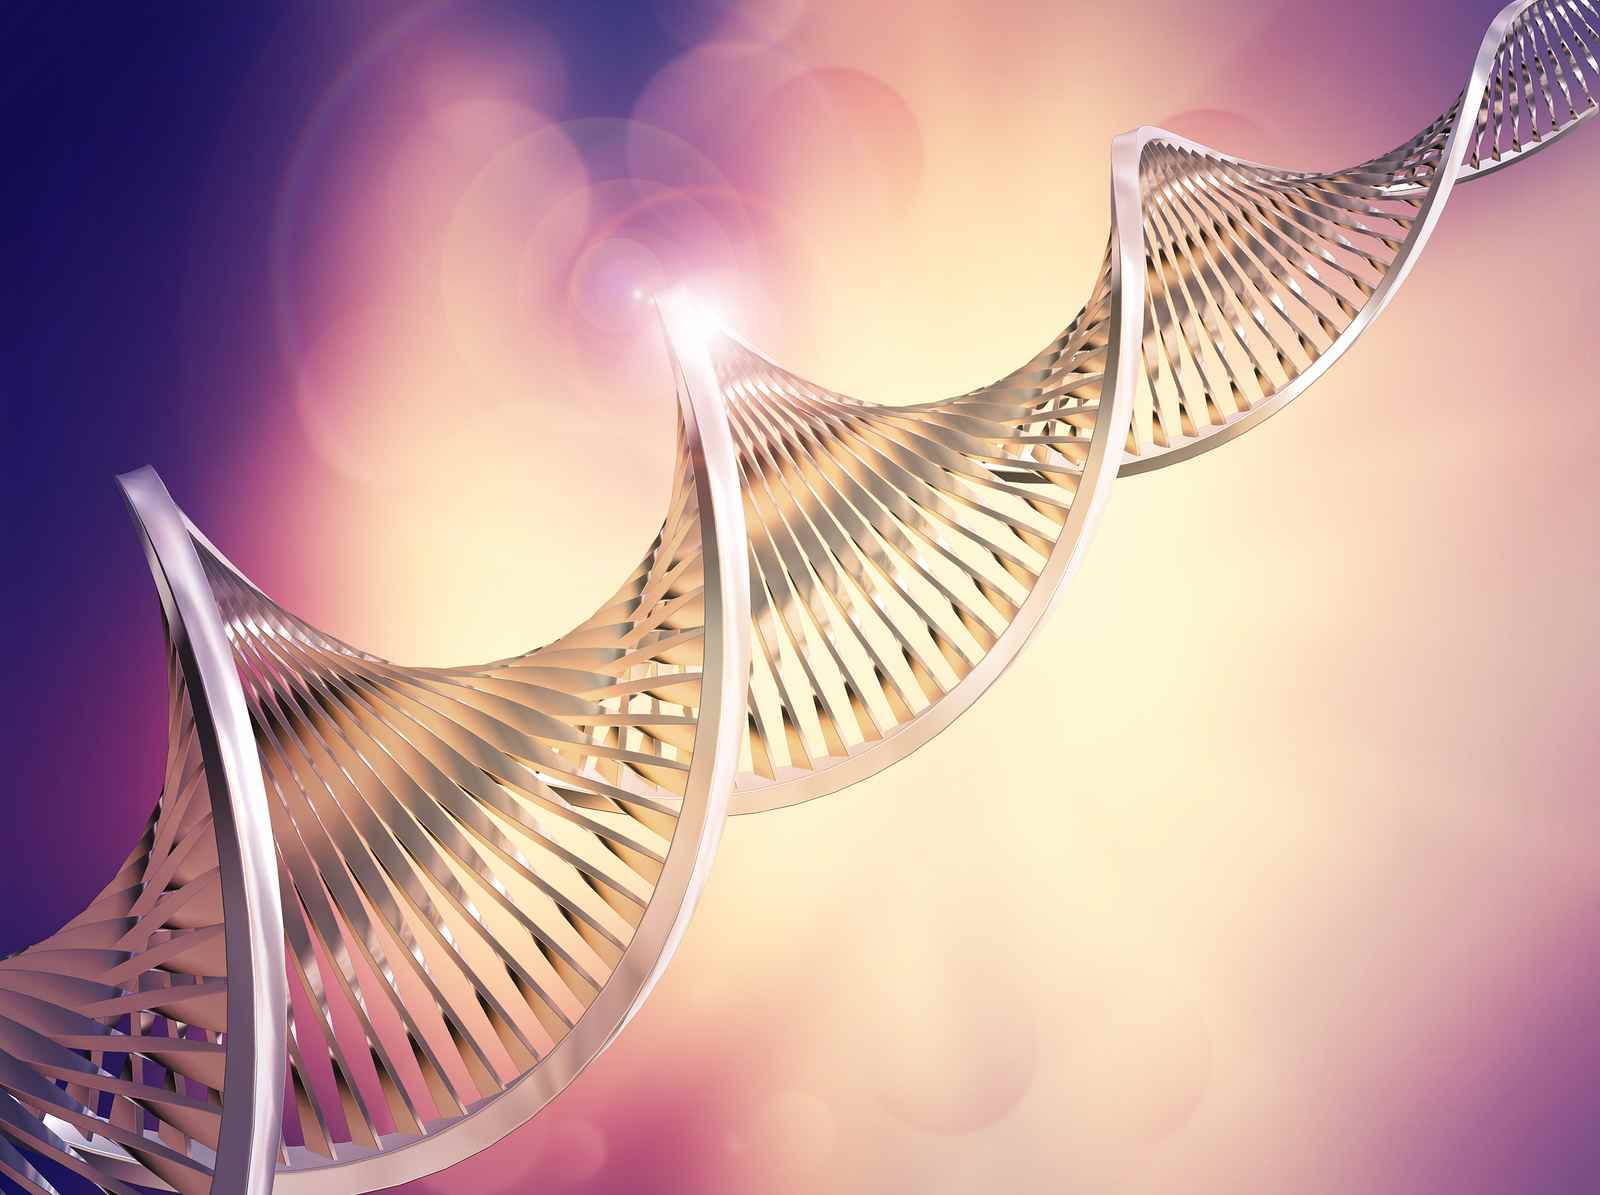 Stem Cell Test May Identify Aggressive Breast Cancers